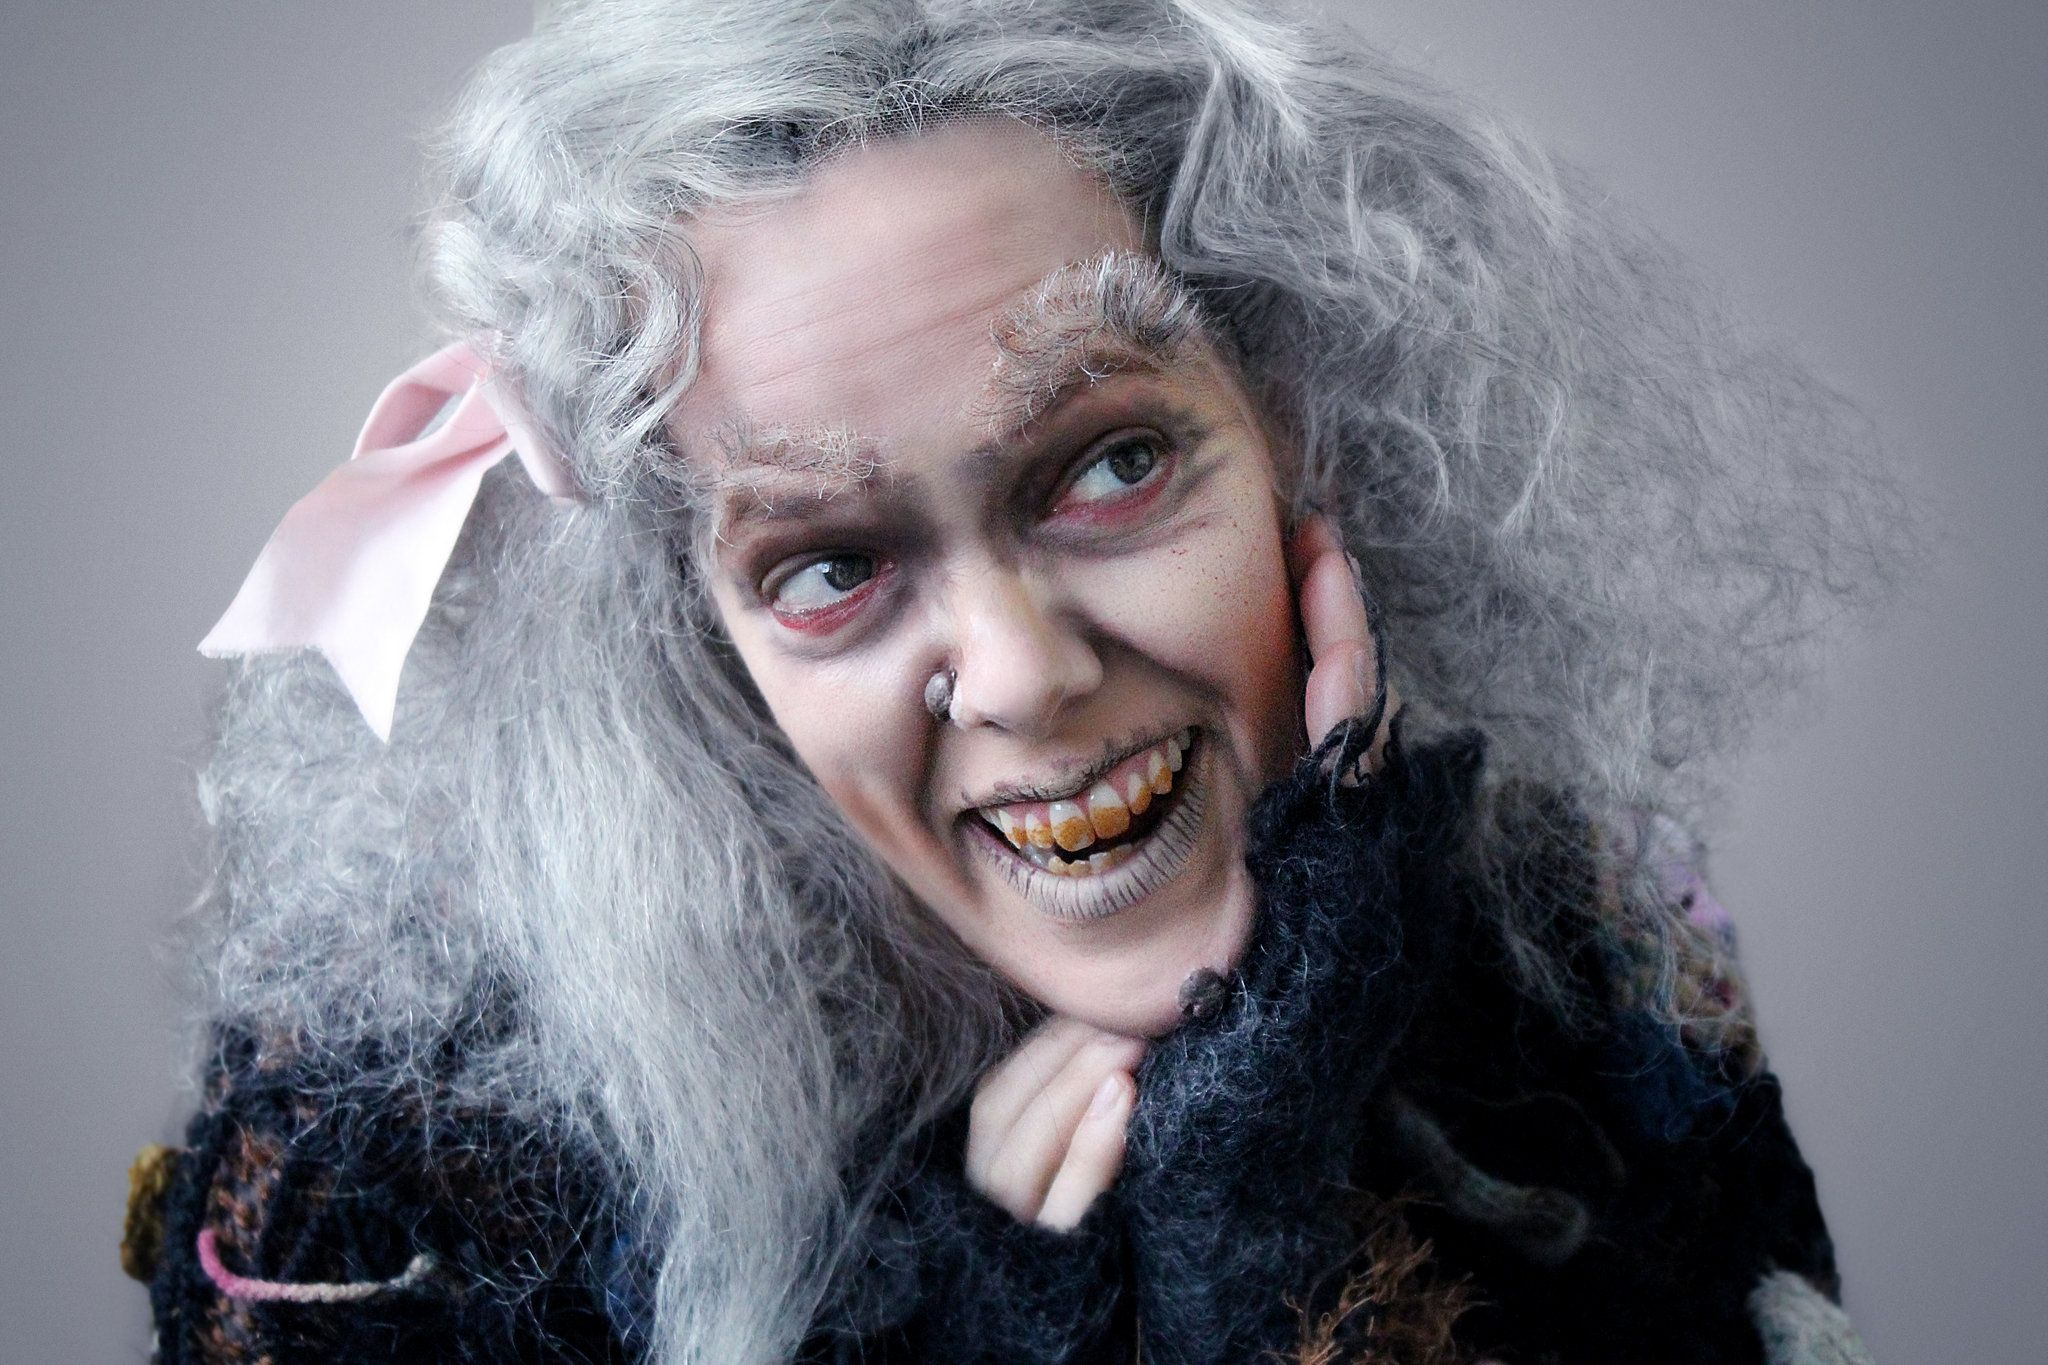 39 the addams family 39 actress amanda bruton says matriarch grandma is more than just comic relief. Black Bedroom Furniture Sets. Home Design Ideas